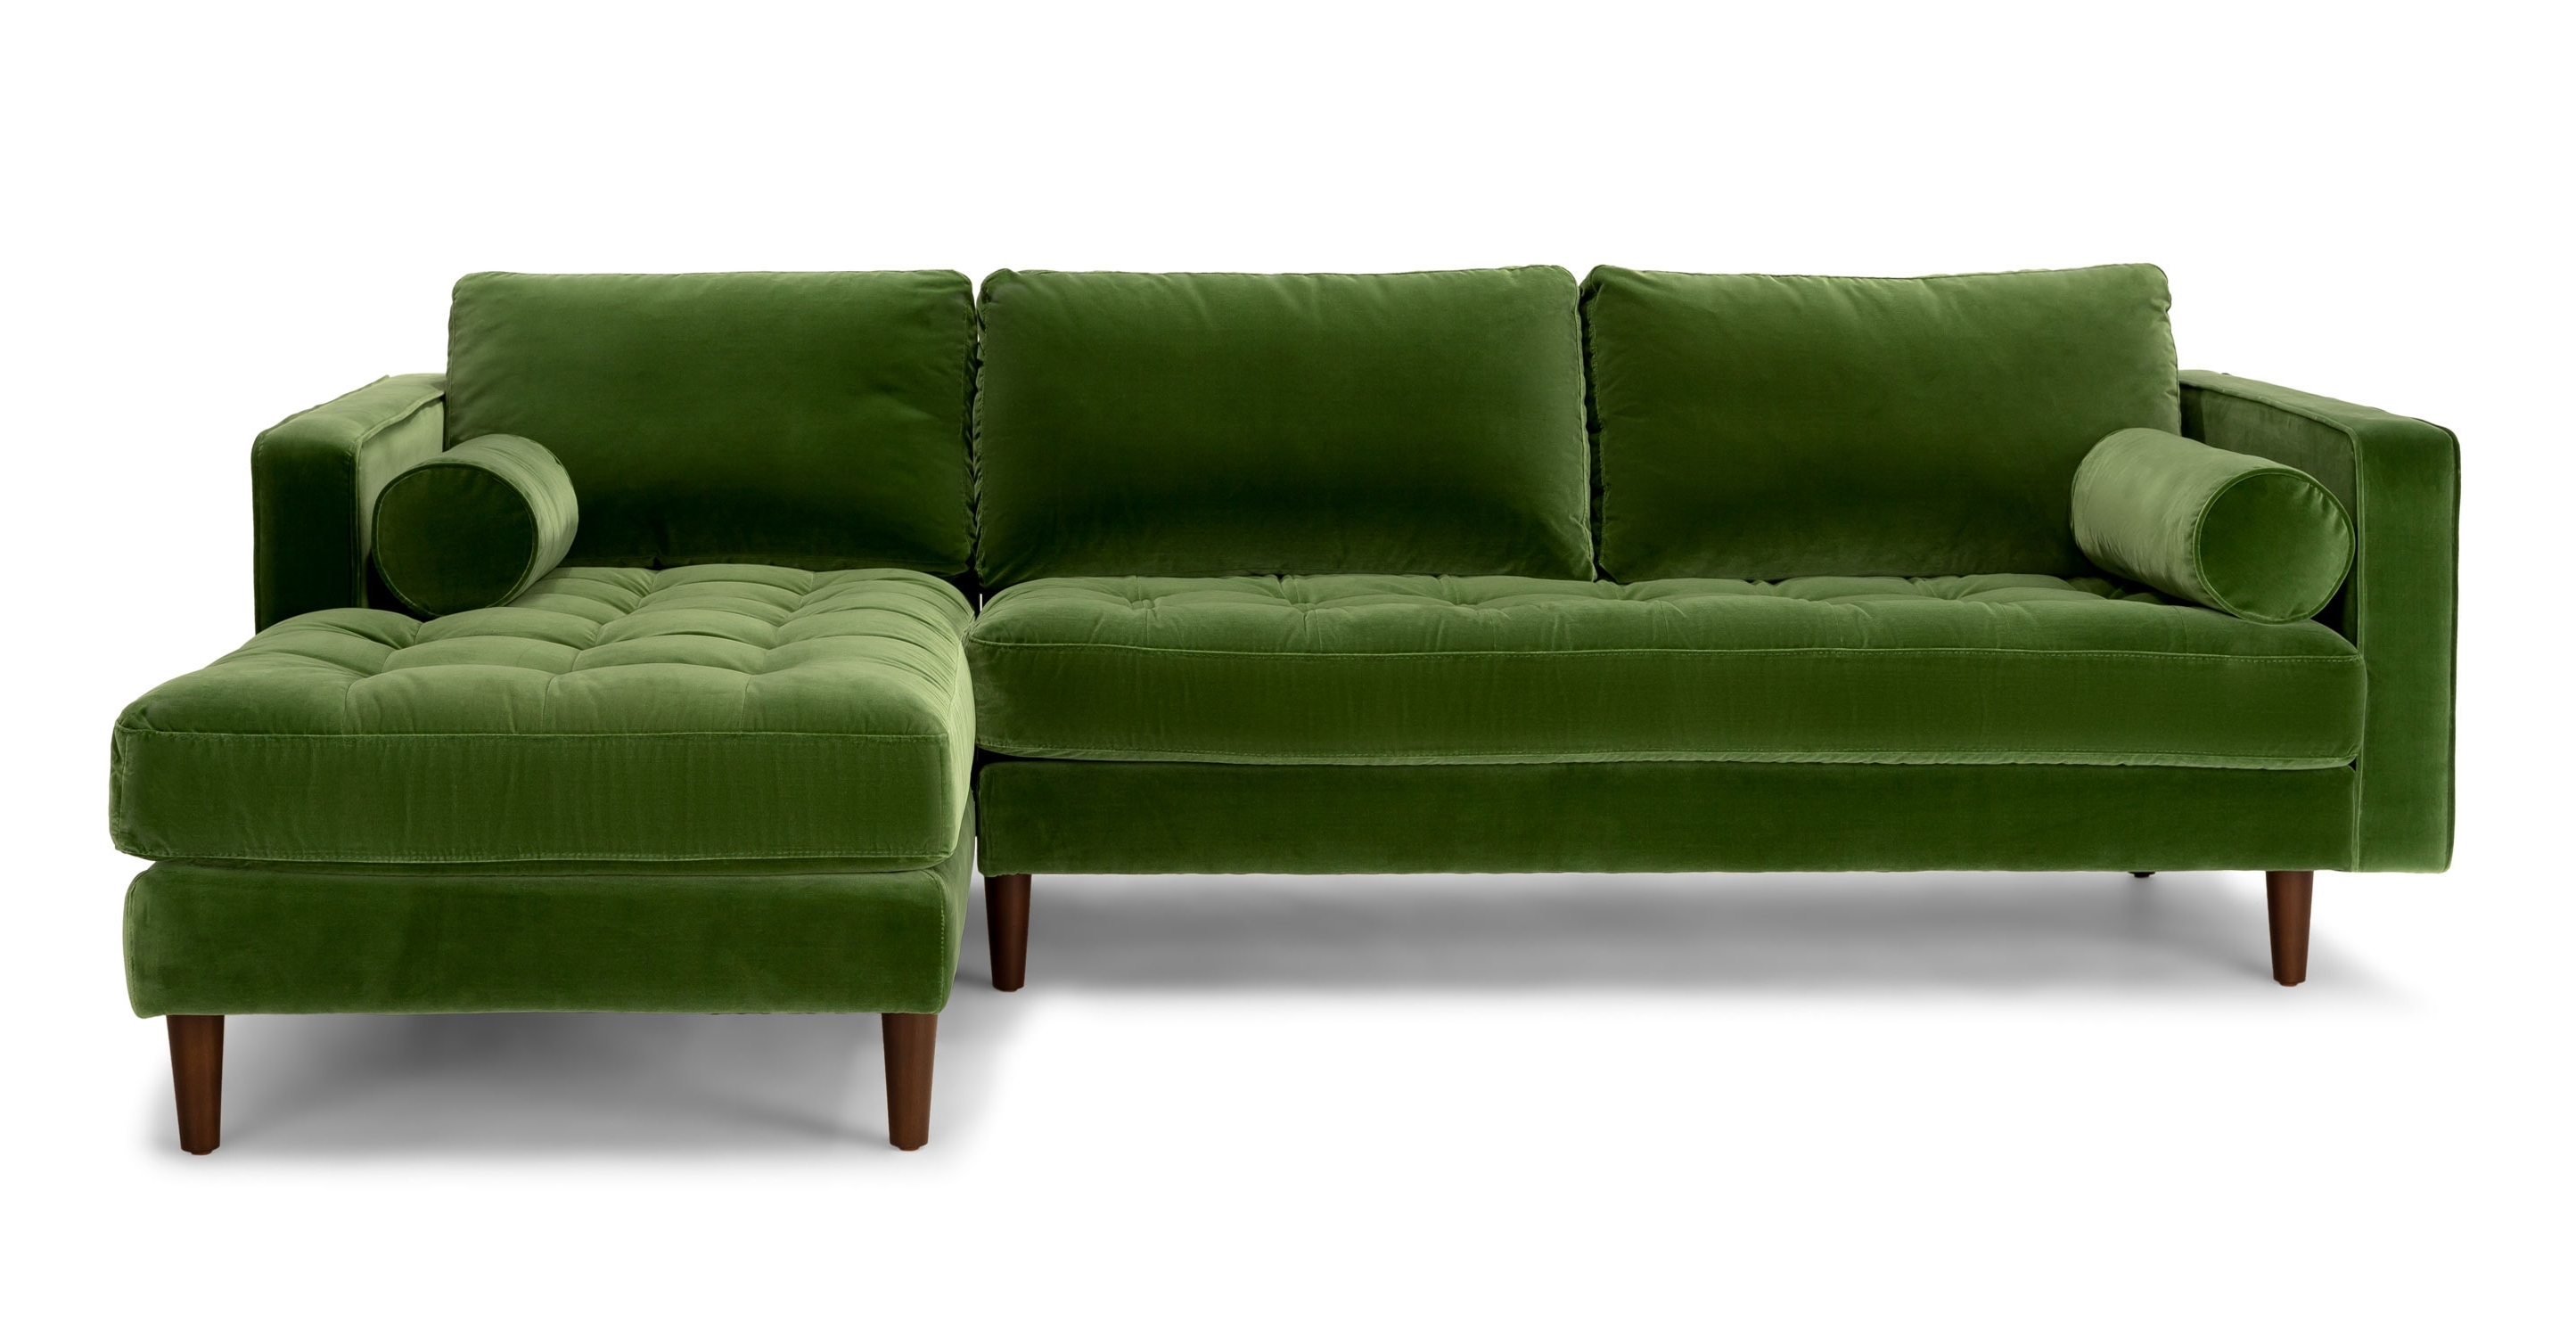 Green Sectional Sofas For Latest Excellent Sofa On Sale On Green Sectional Sofa Easy As (View 5 of 15)